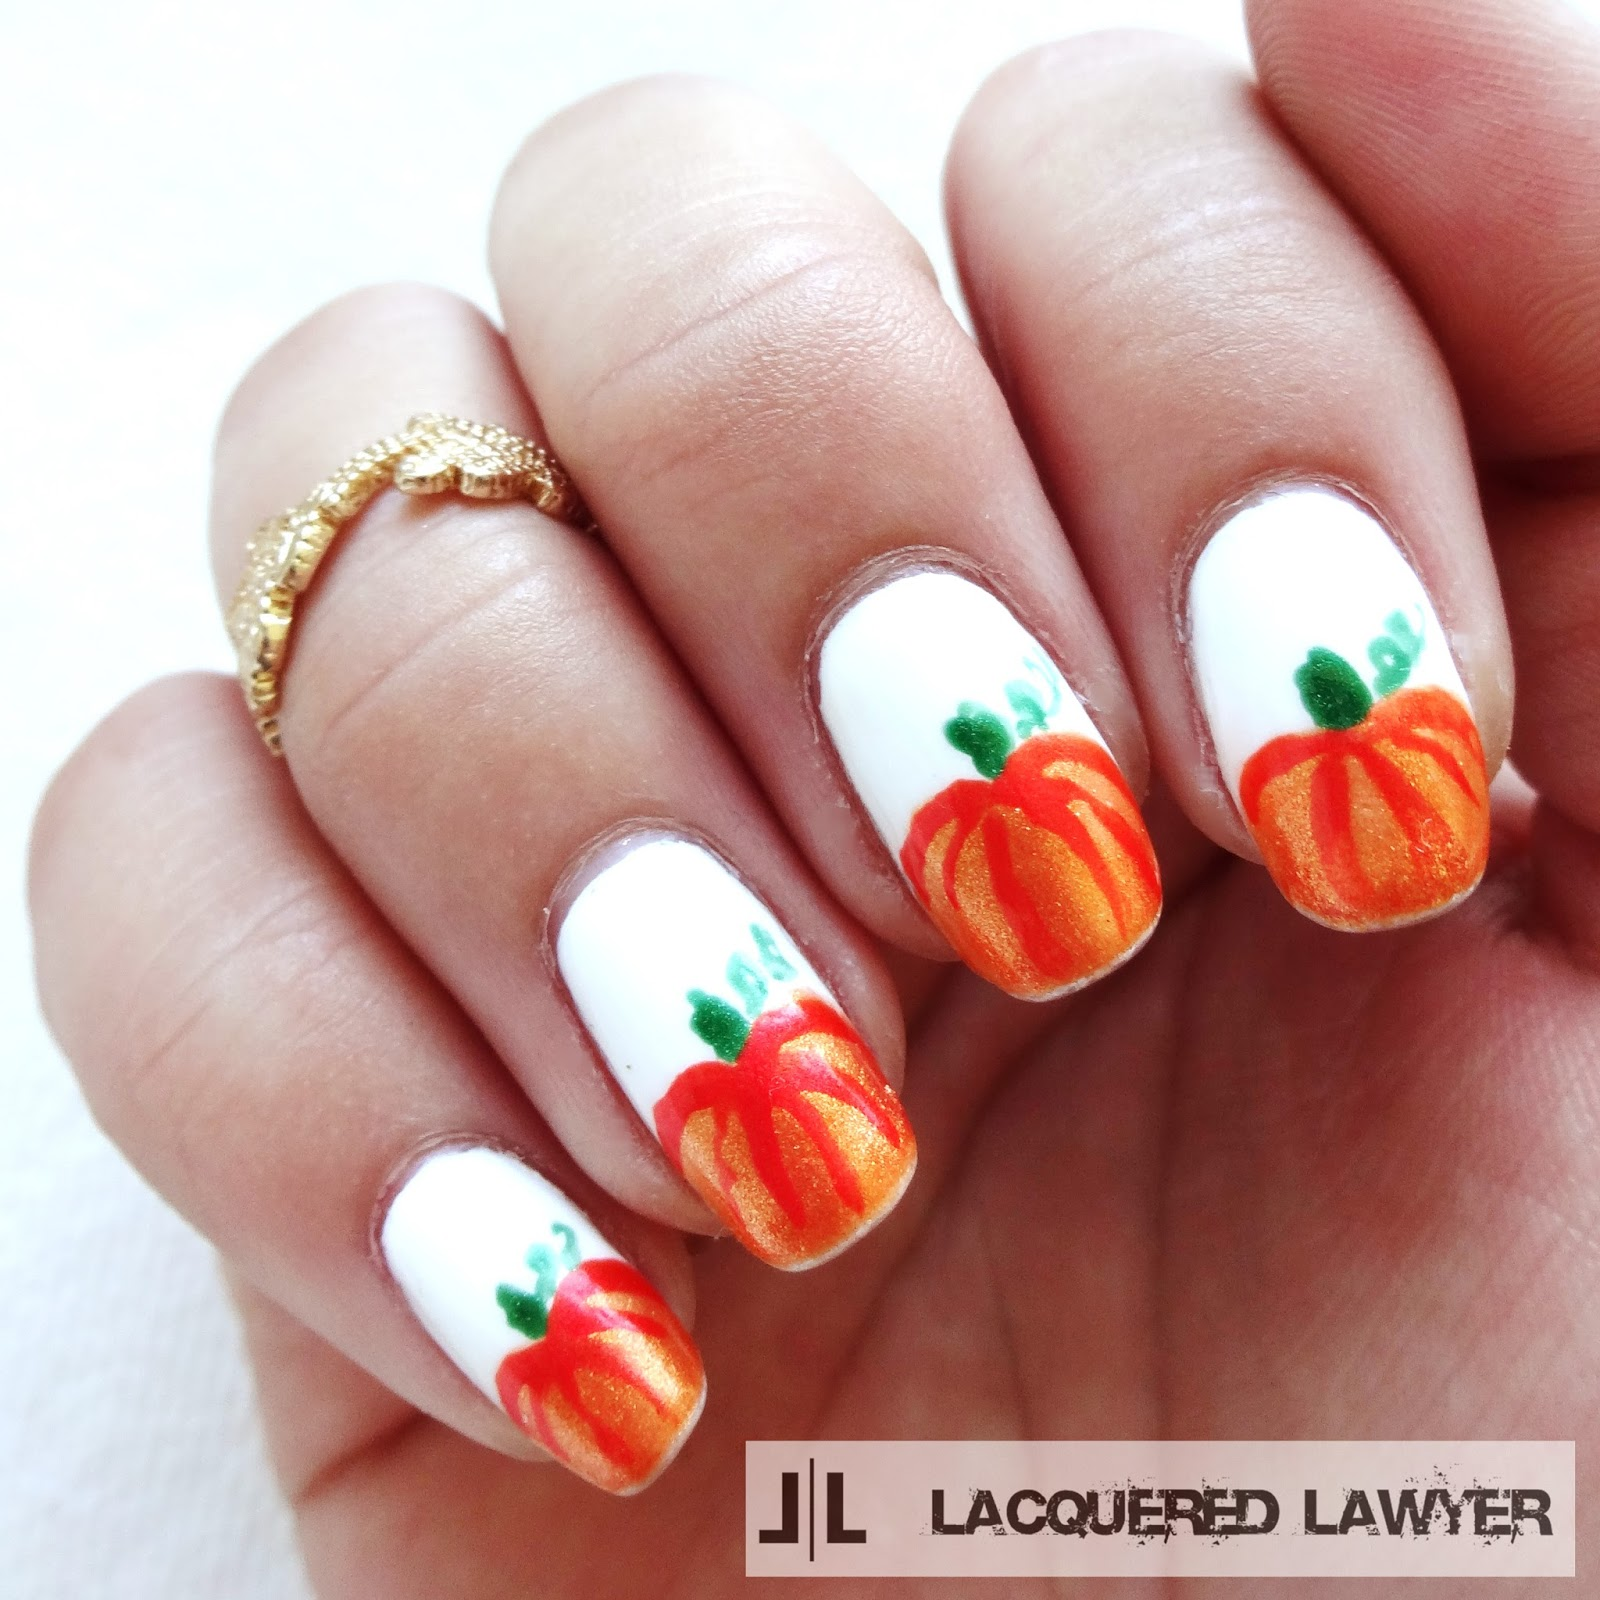 Lacquered lawyer nail art blog pumpkin patch pumpkin patch pumpkin nail art prinsesfo Choice Image